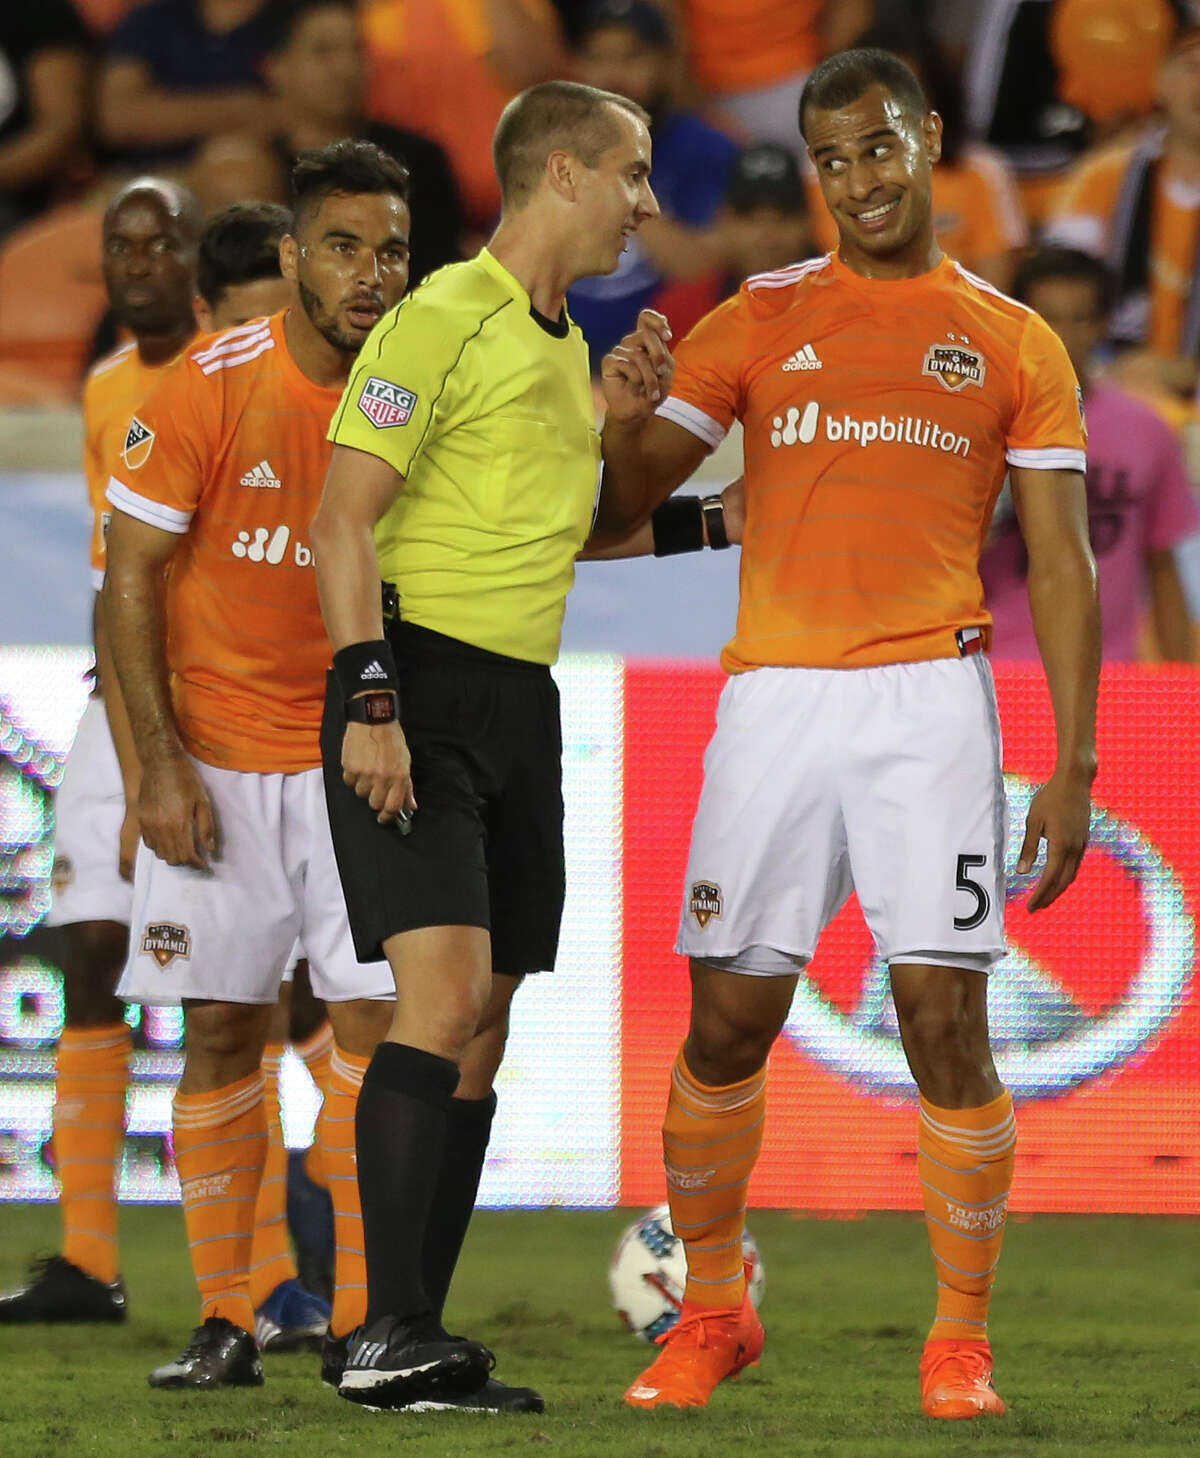 Houston Dynamo midfielder Juan David Cabezas (5) talks to Referee Mark Geiger about him calling foul against Houston Dynamo midfielder Alex (14) during the first half of the first-round playoff MLS match against the Sporting Kansas City at BBVA Compass Stadium Thursday, Oct. 26, 2017, in Houston. ( Yi-Chin Lee / Houston Chronicle )